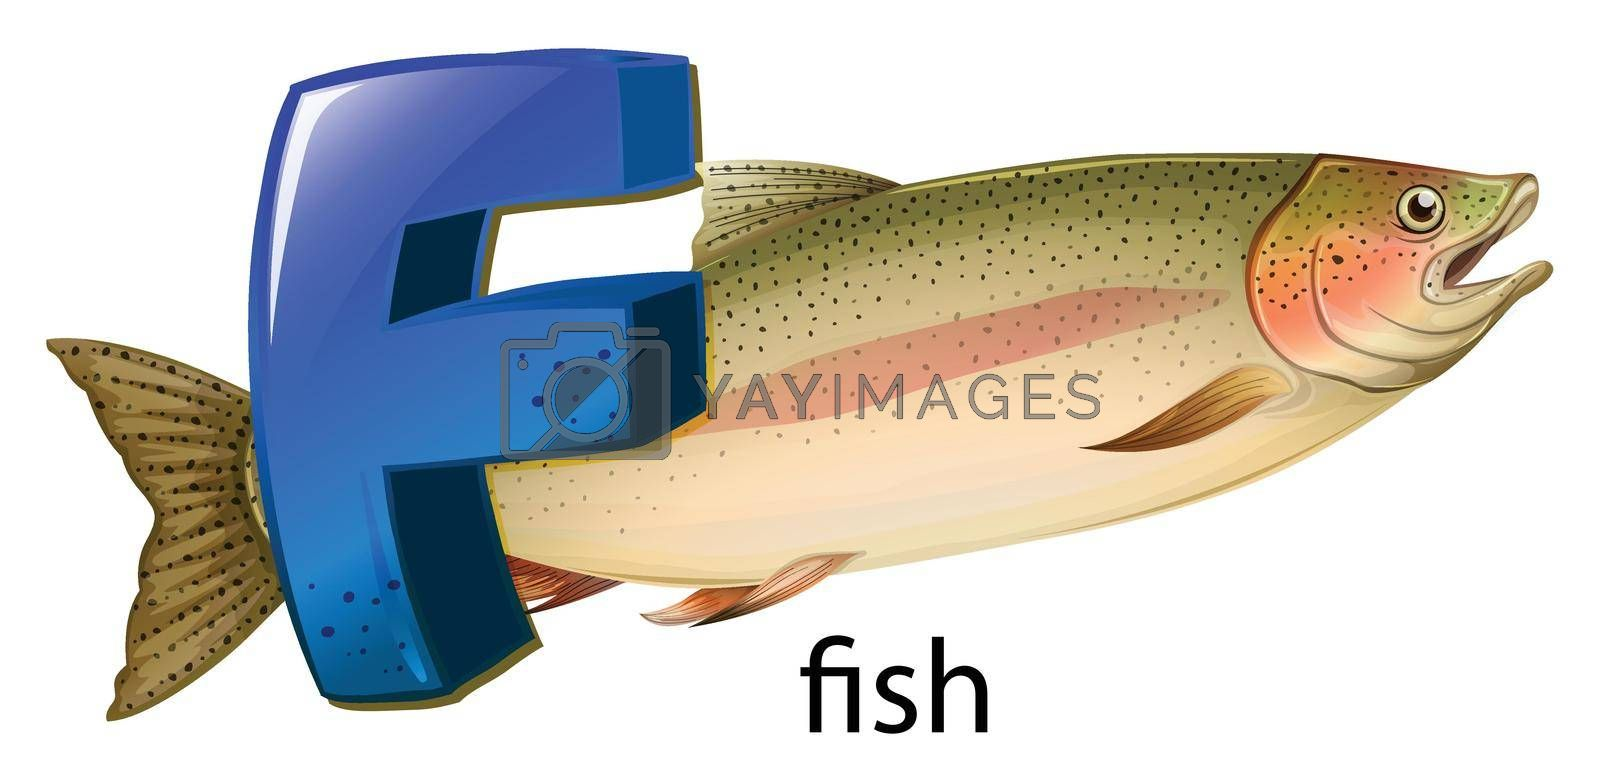 Royalty free image of A letter F for fish by iimages